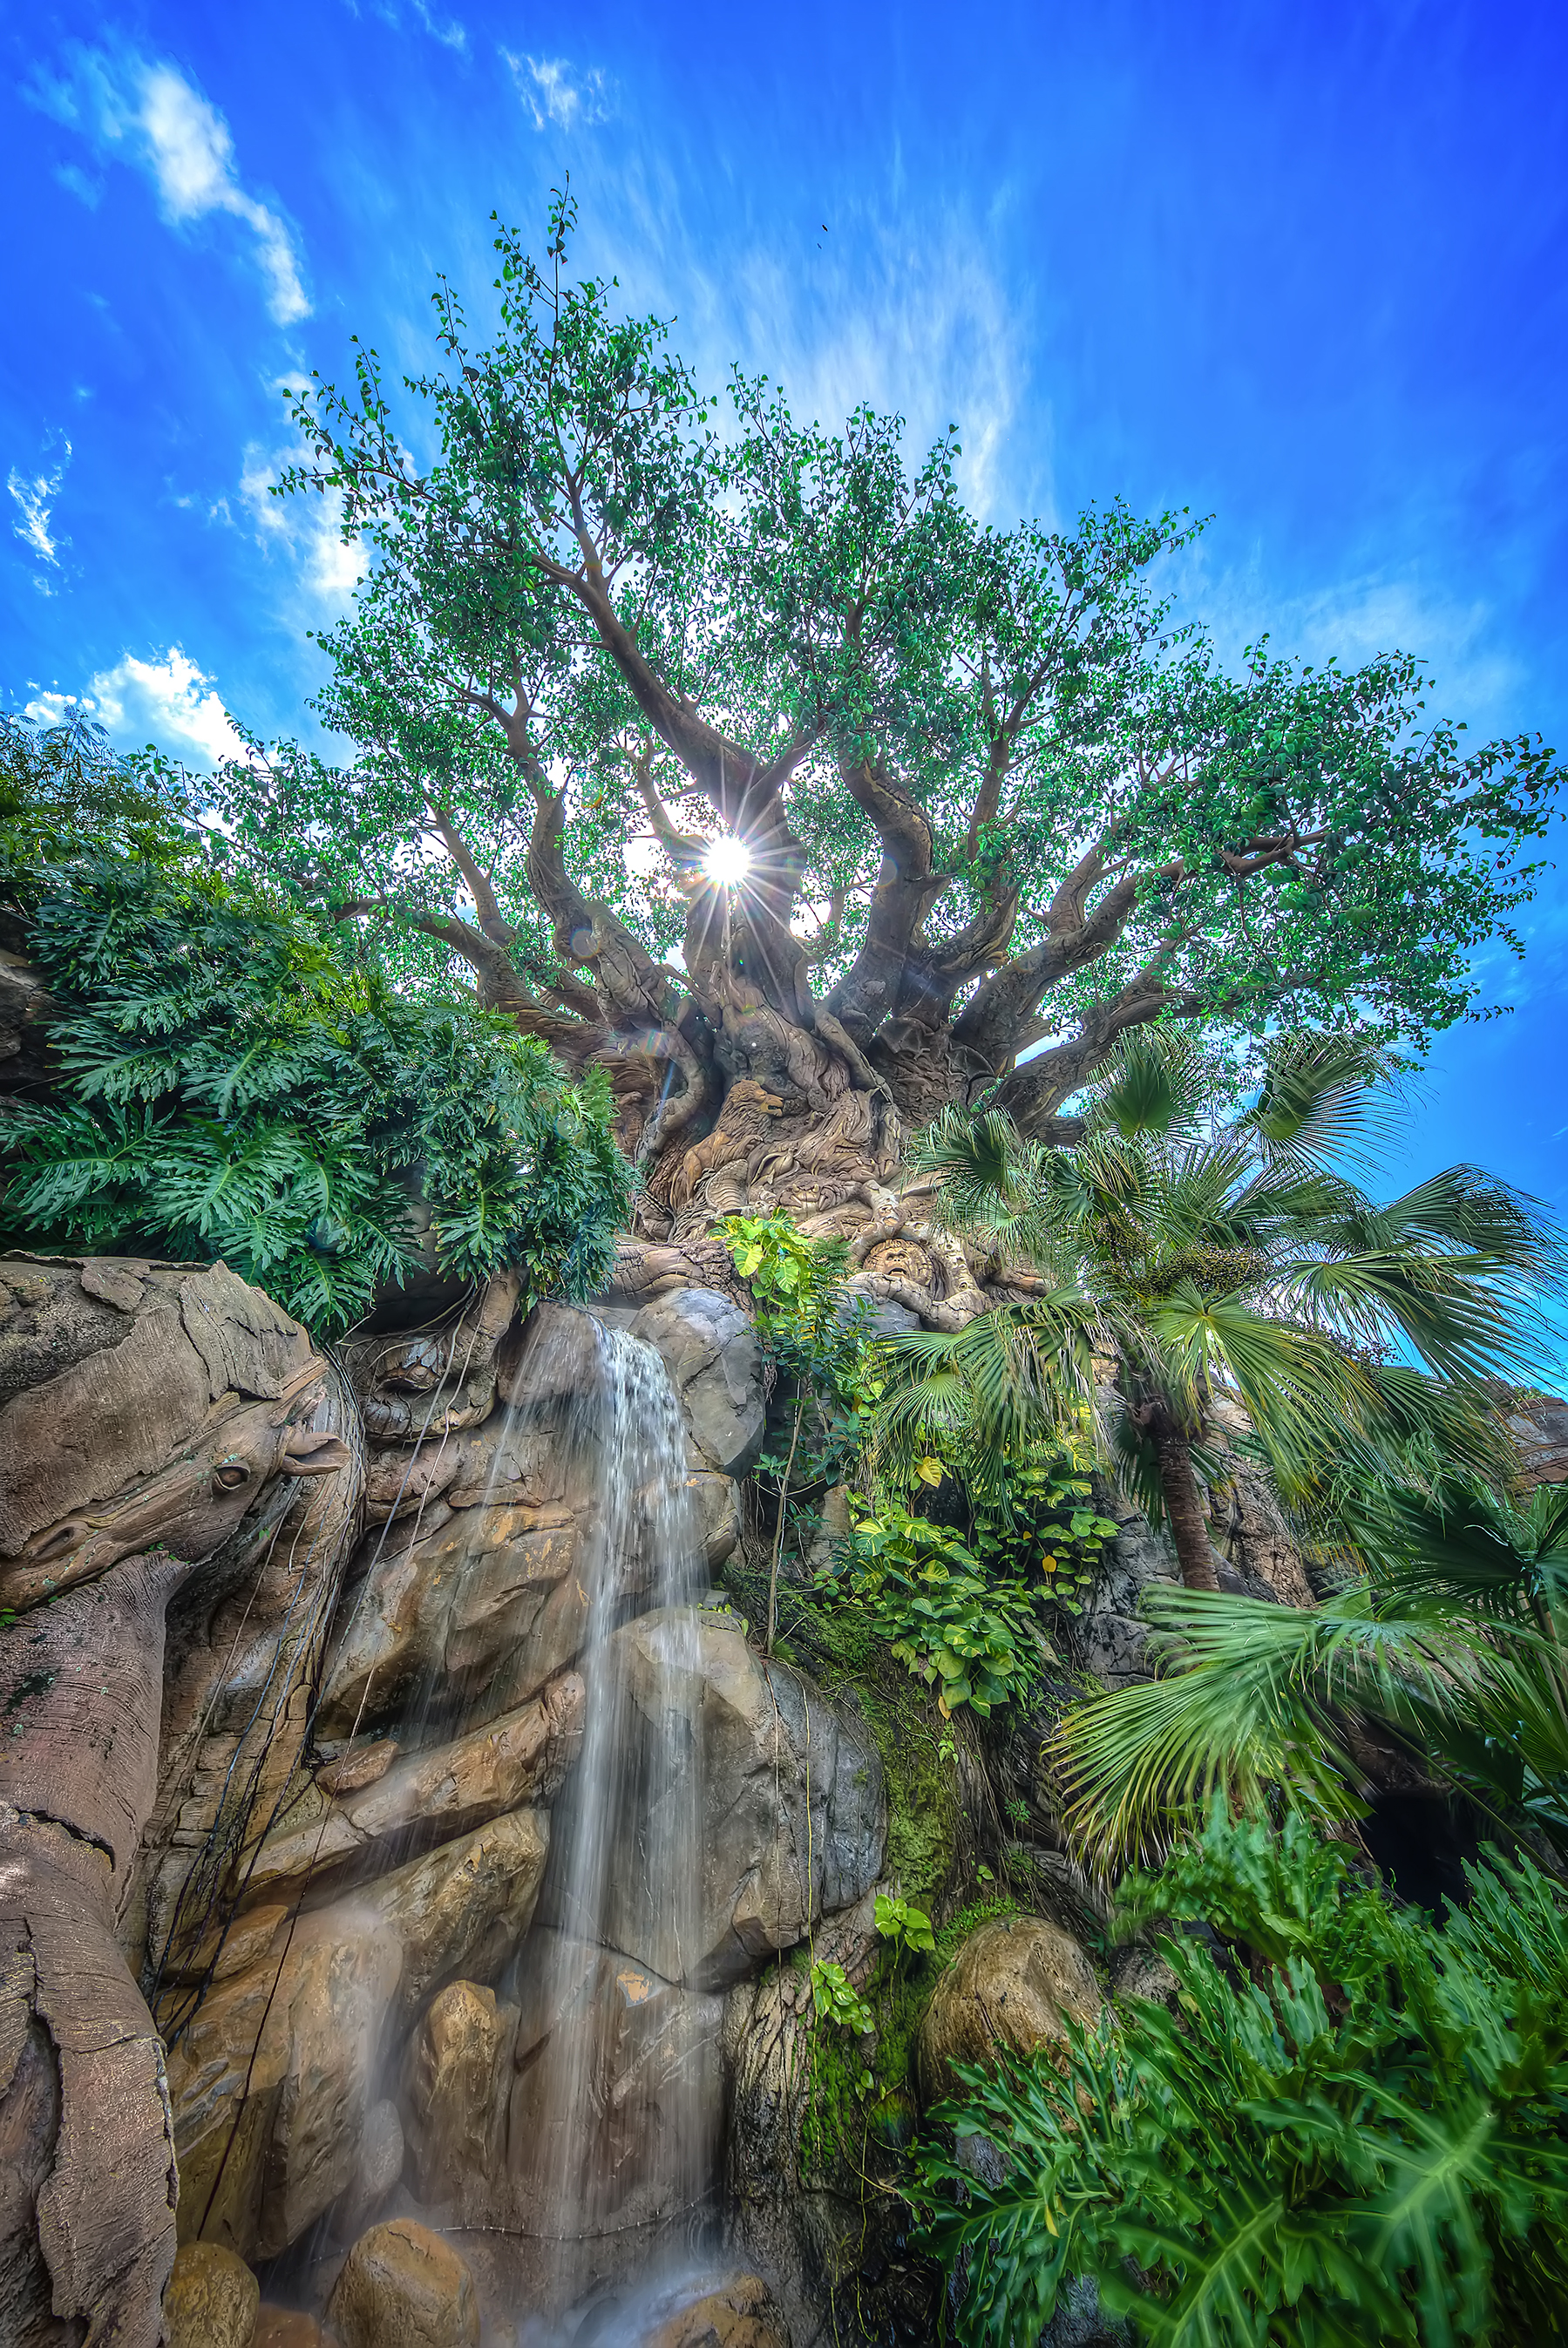 The Best Animal Kingdom Pictures - WDW Magazine